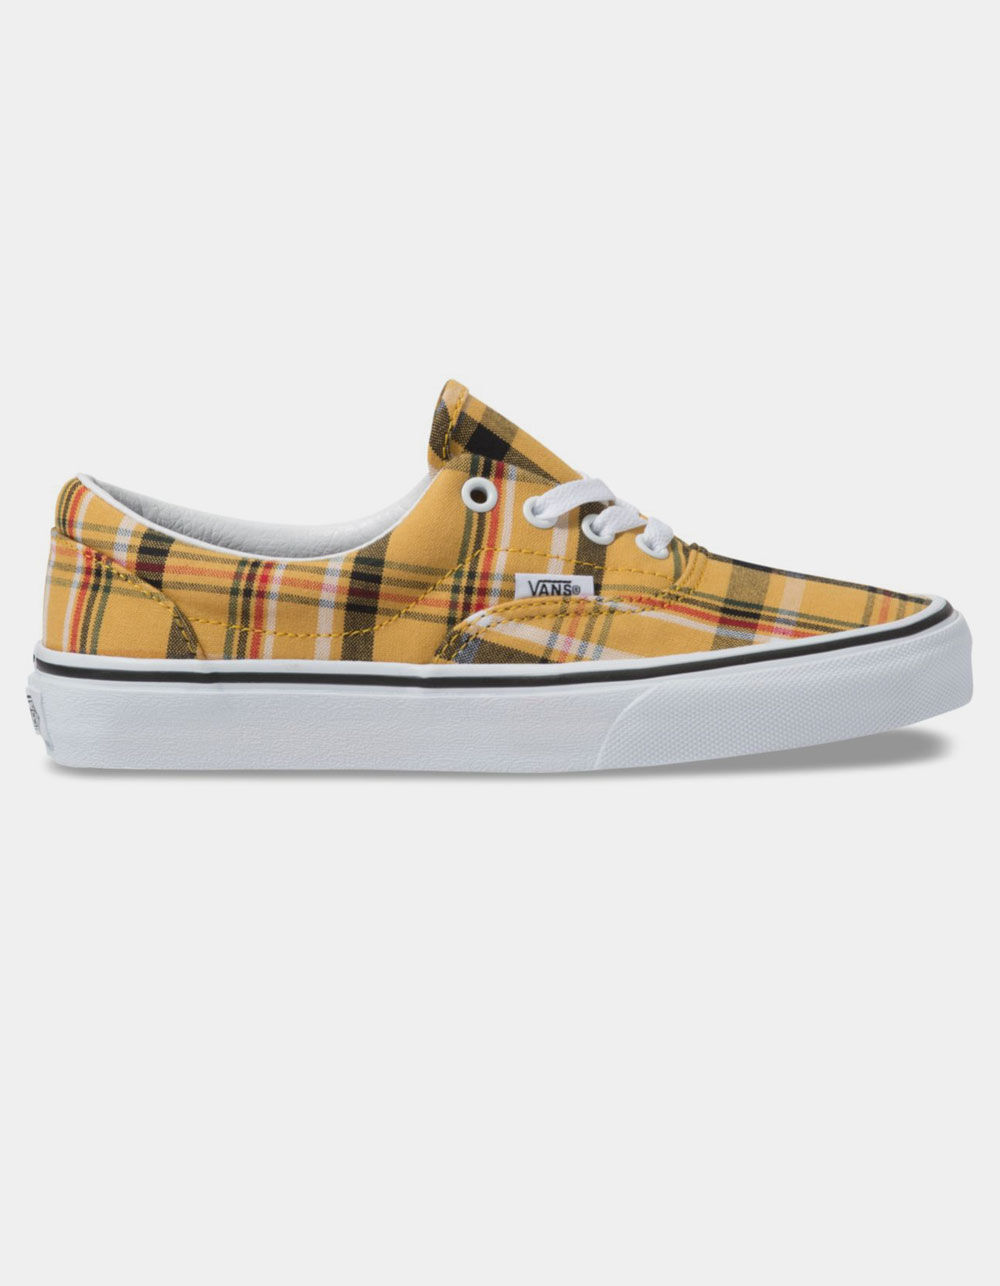 VANS Plaid Era Yellow & True White Shoes